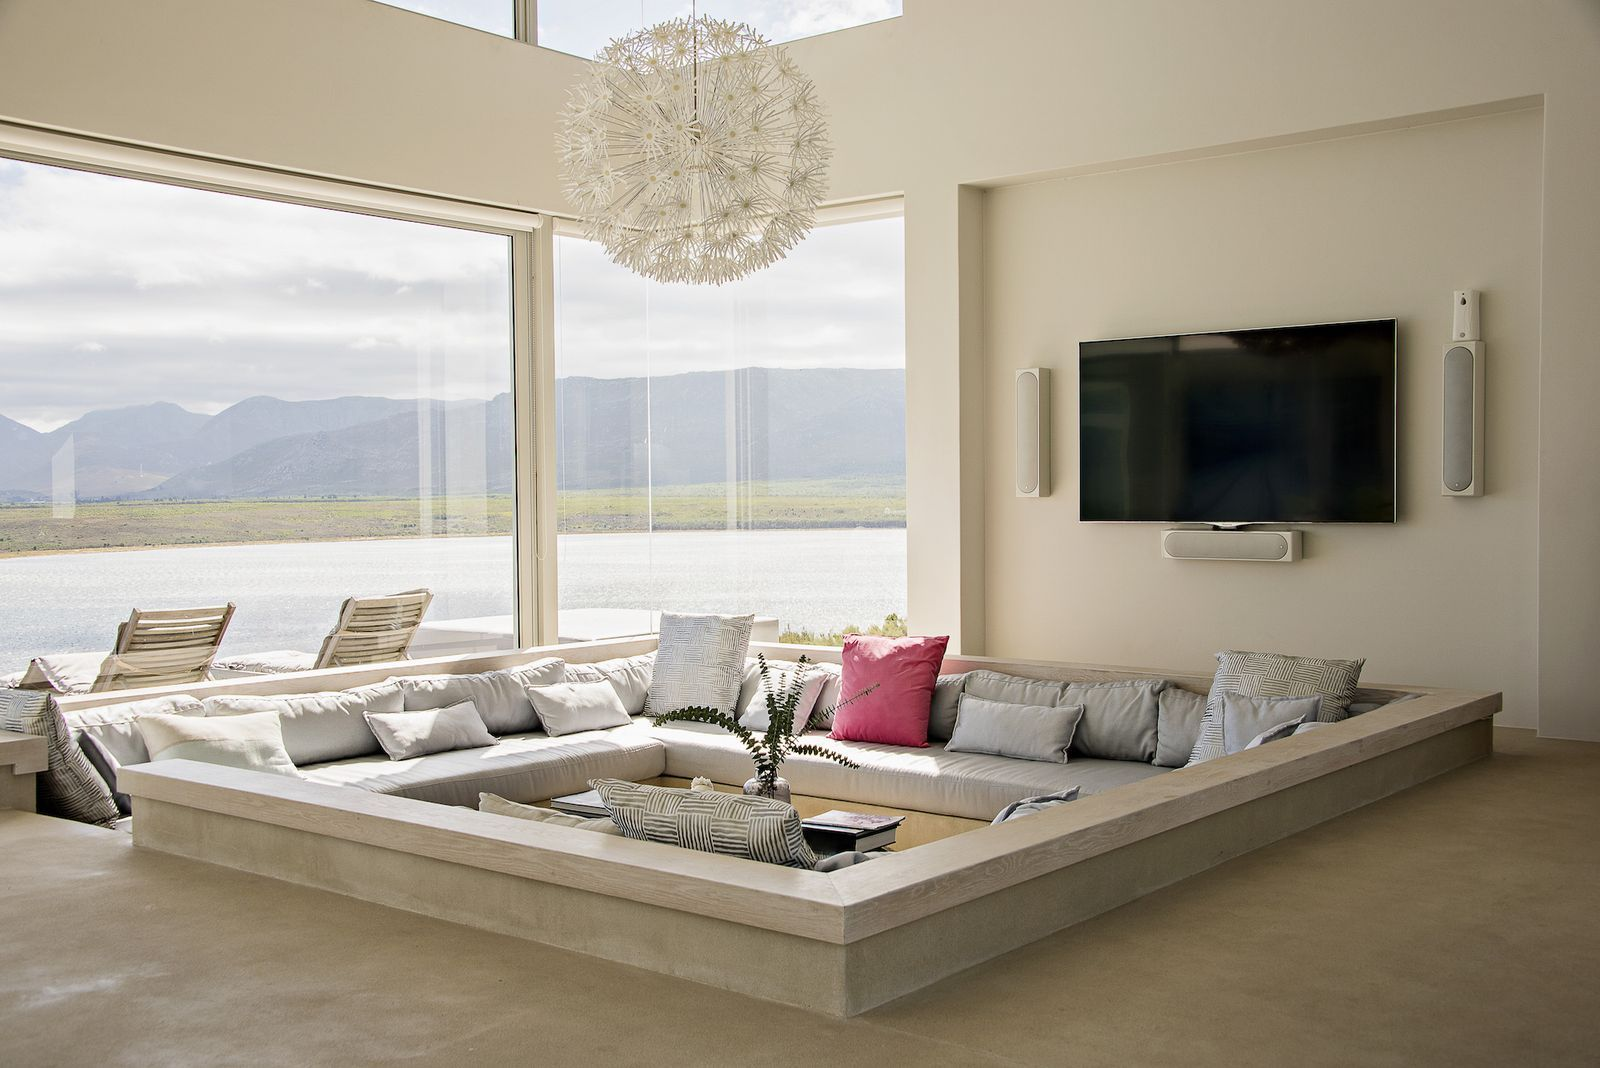 Living Room Vs Family Room Is There A Difference Kid Friendly Living Room House Interior Design Living Room Formal Living Rooms